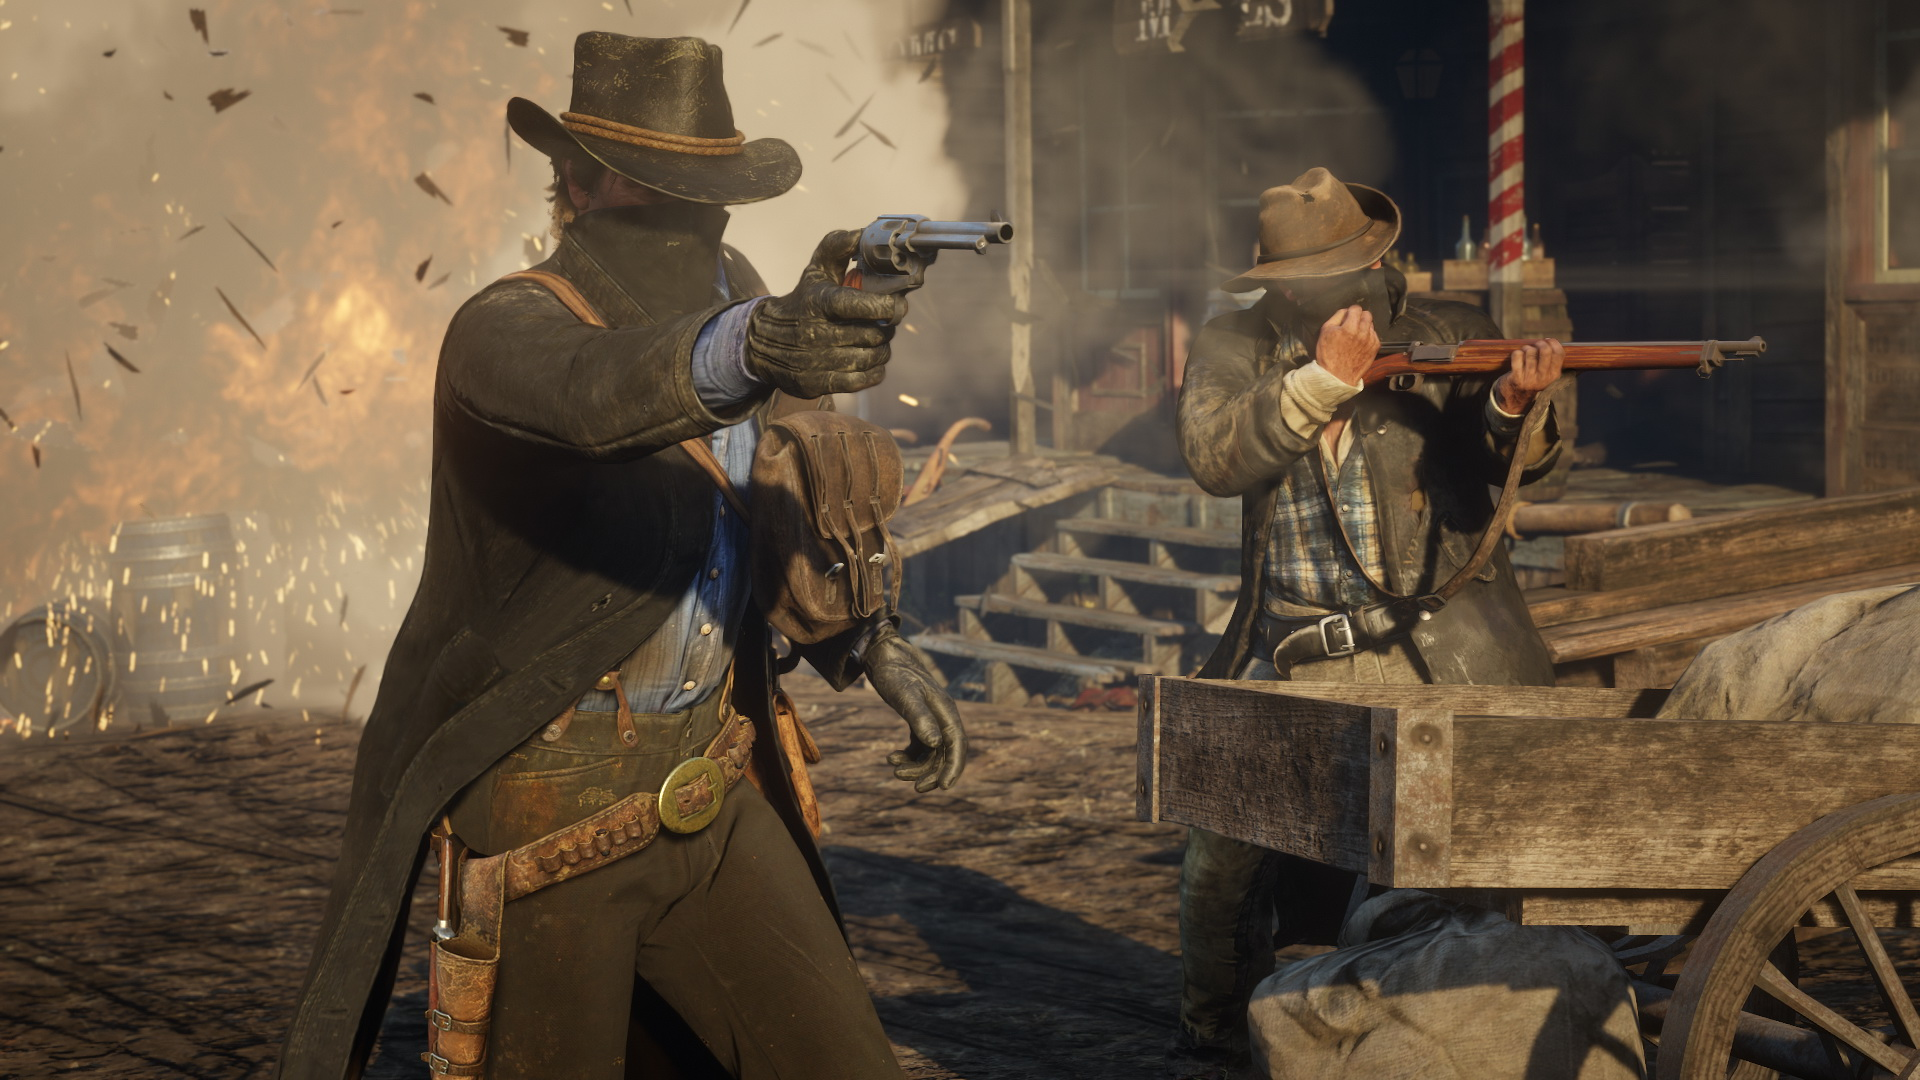 Red Dead Redemption 2 is getting DLSS in the next update